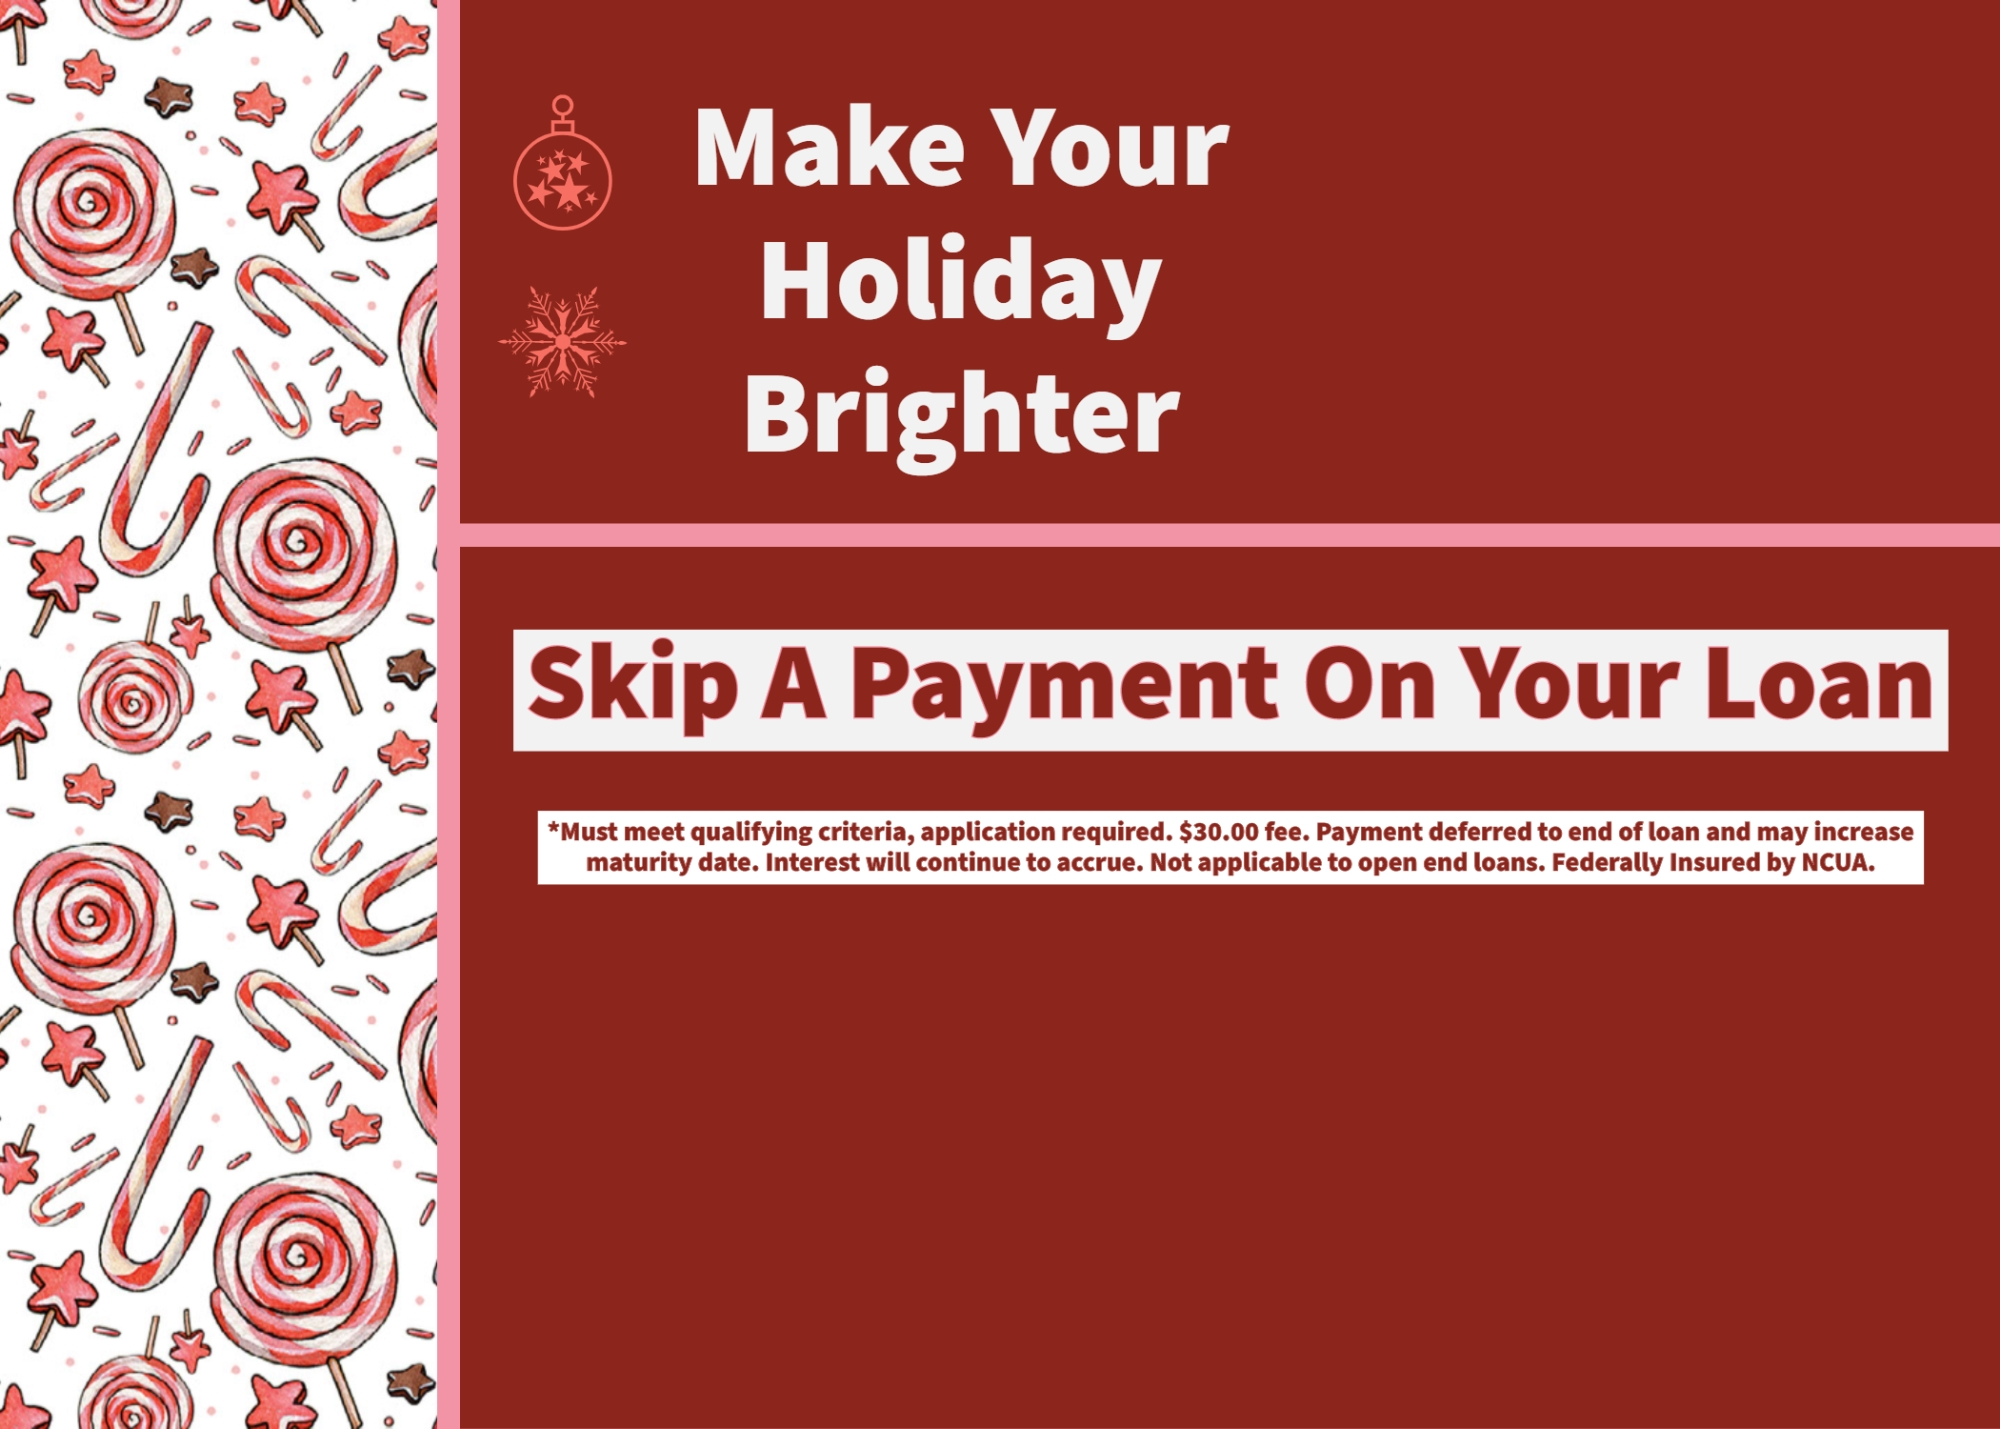 Skip A Payment On Your Loan